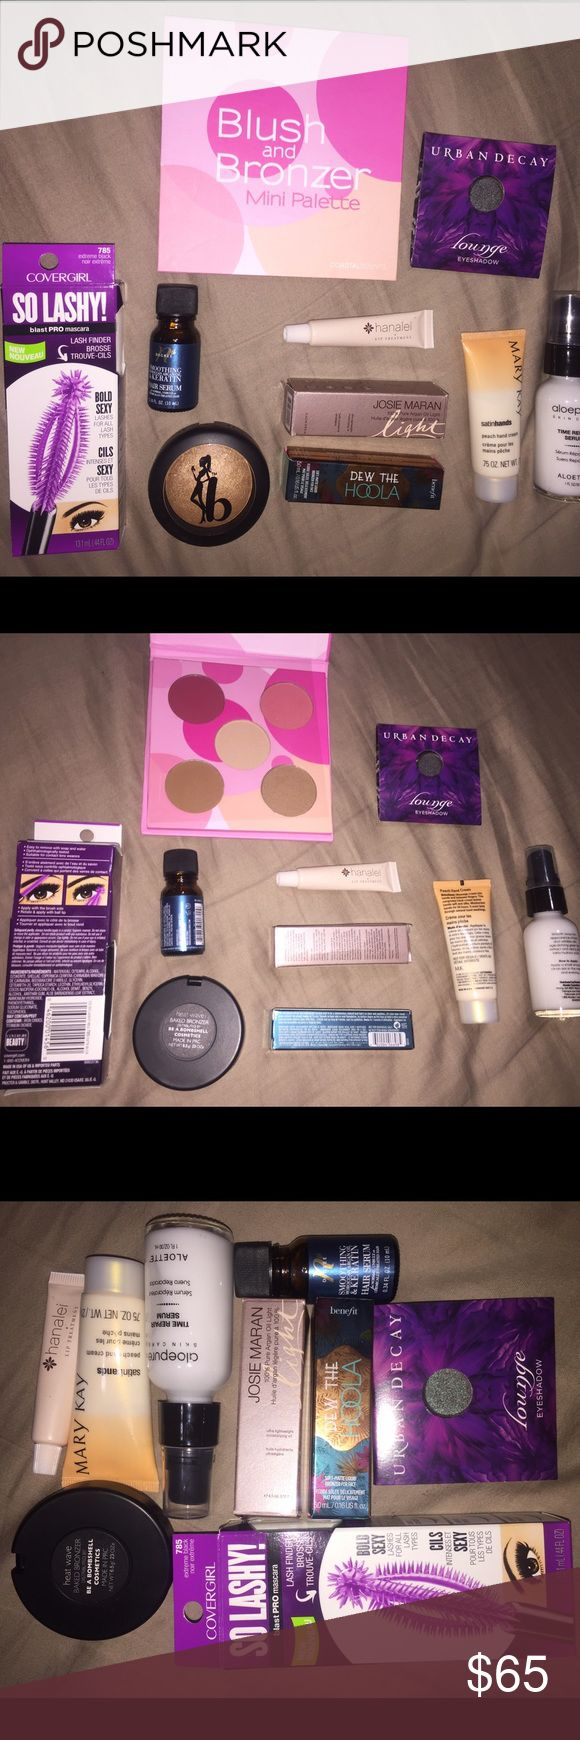 💕 SUNDAY SALE 💕 HUGE Makeup Bundle - blush and bronzer mini palette by coastal scents - covergirl so lashy blast pro mascara in extreme black 13.1mL (13.1 mL) - urban decay lounge eyeshadow - be a bombshell cosmetics baked bronzer in heat wave - benefit dew the hoola soft matte liquid bronzer for face (5.0mL) - Josie Maran 100% pure argan oil light moisturizing oil (4.5mL) - Mary Kay satin hands peach hand cream (.75 oz) - aloepure skin care time repair serum (1 oz) - Nth degree smoothing…